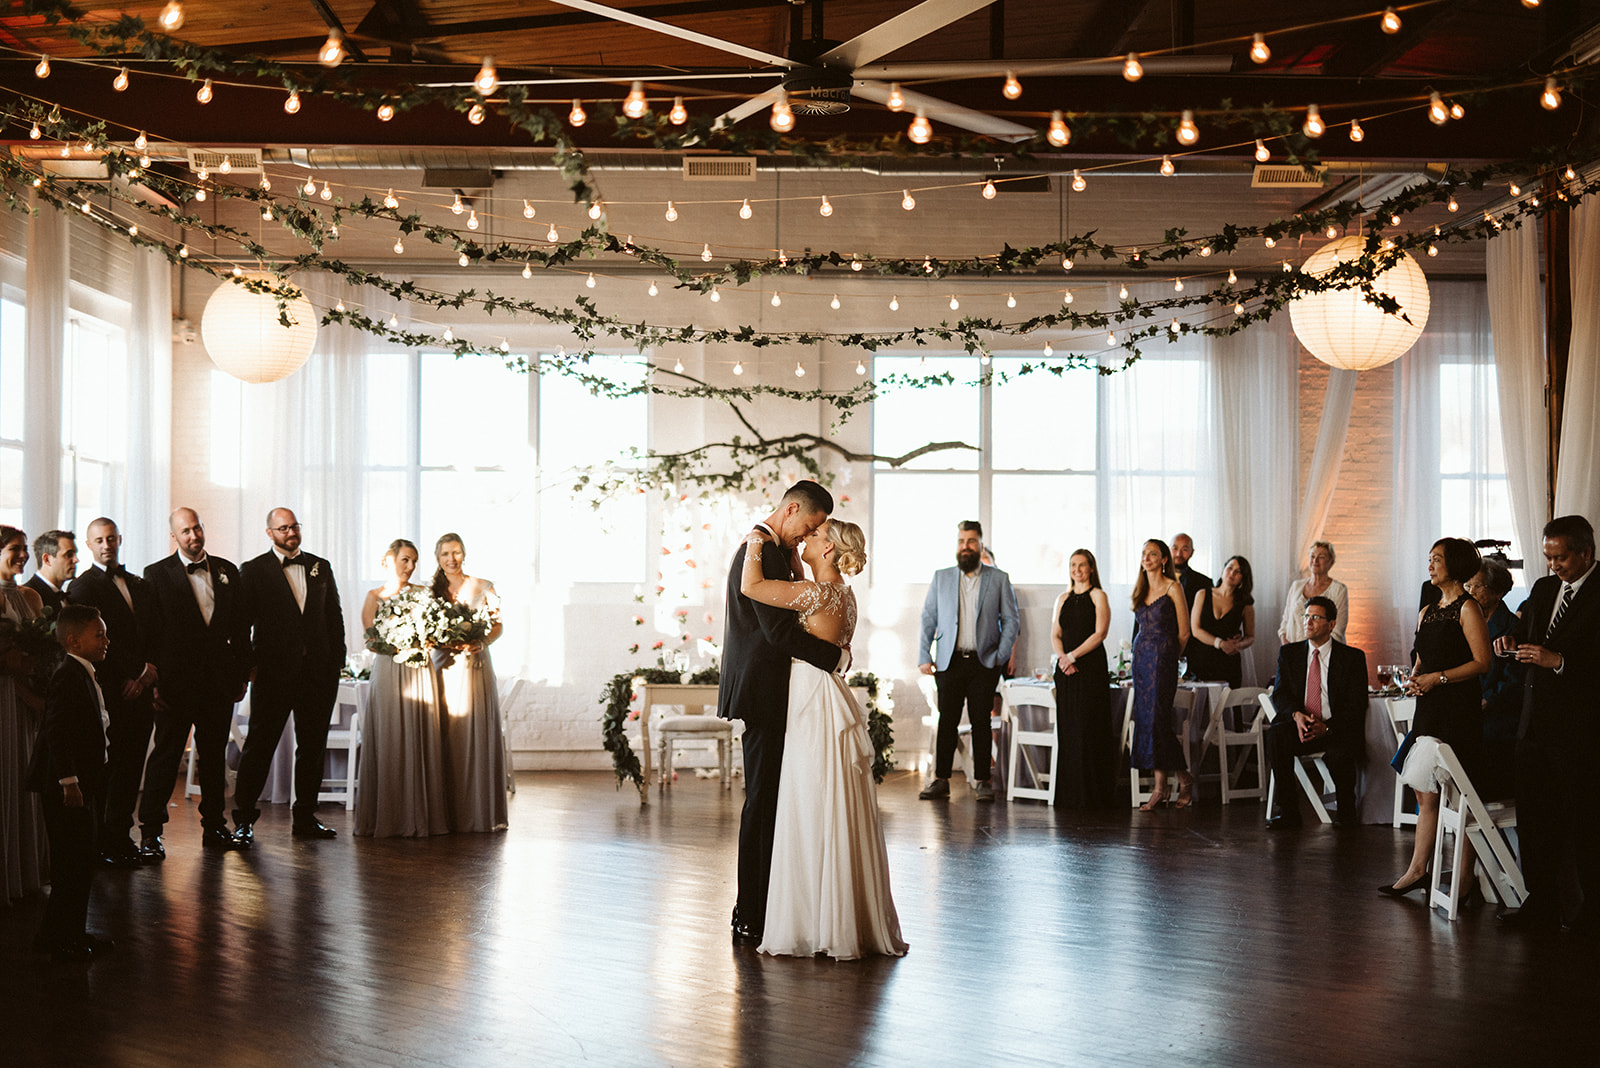 First dance in an art gallery at the Reading Art Works event venue near Philadelphia. The bride is wearing a gown by designer, Miss Haley Paige.